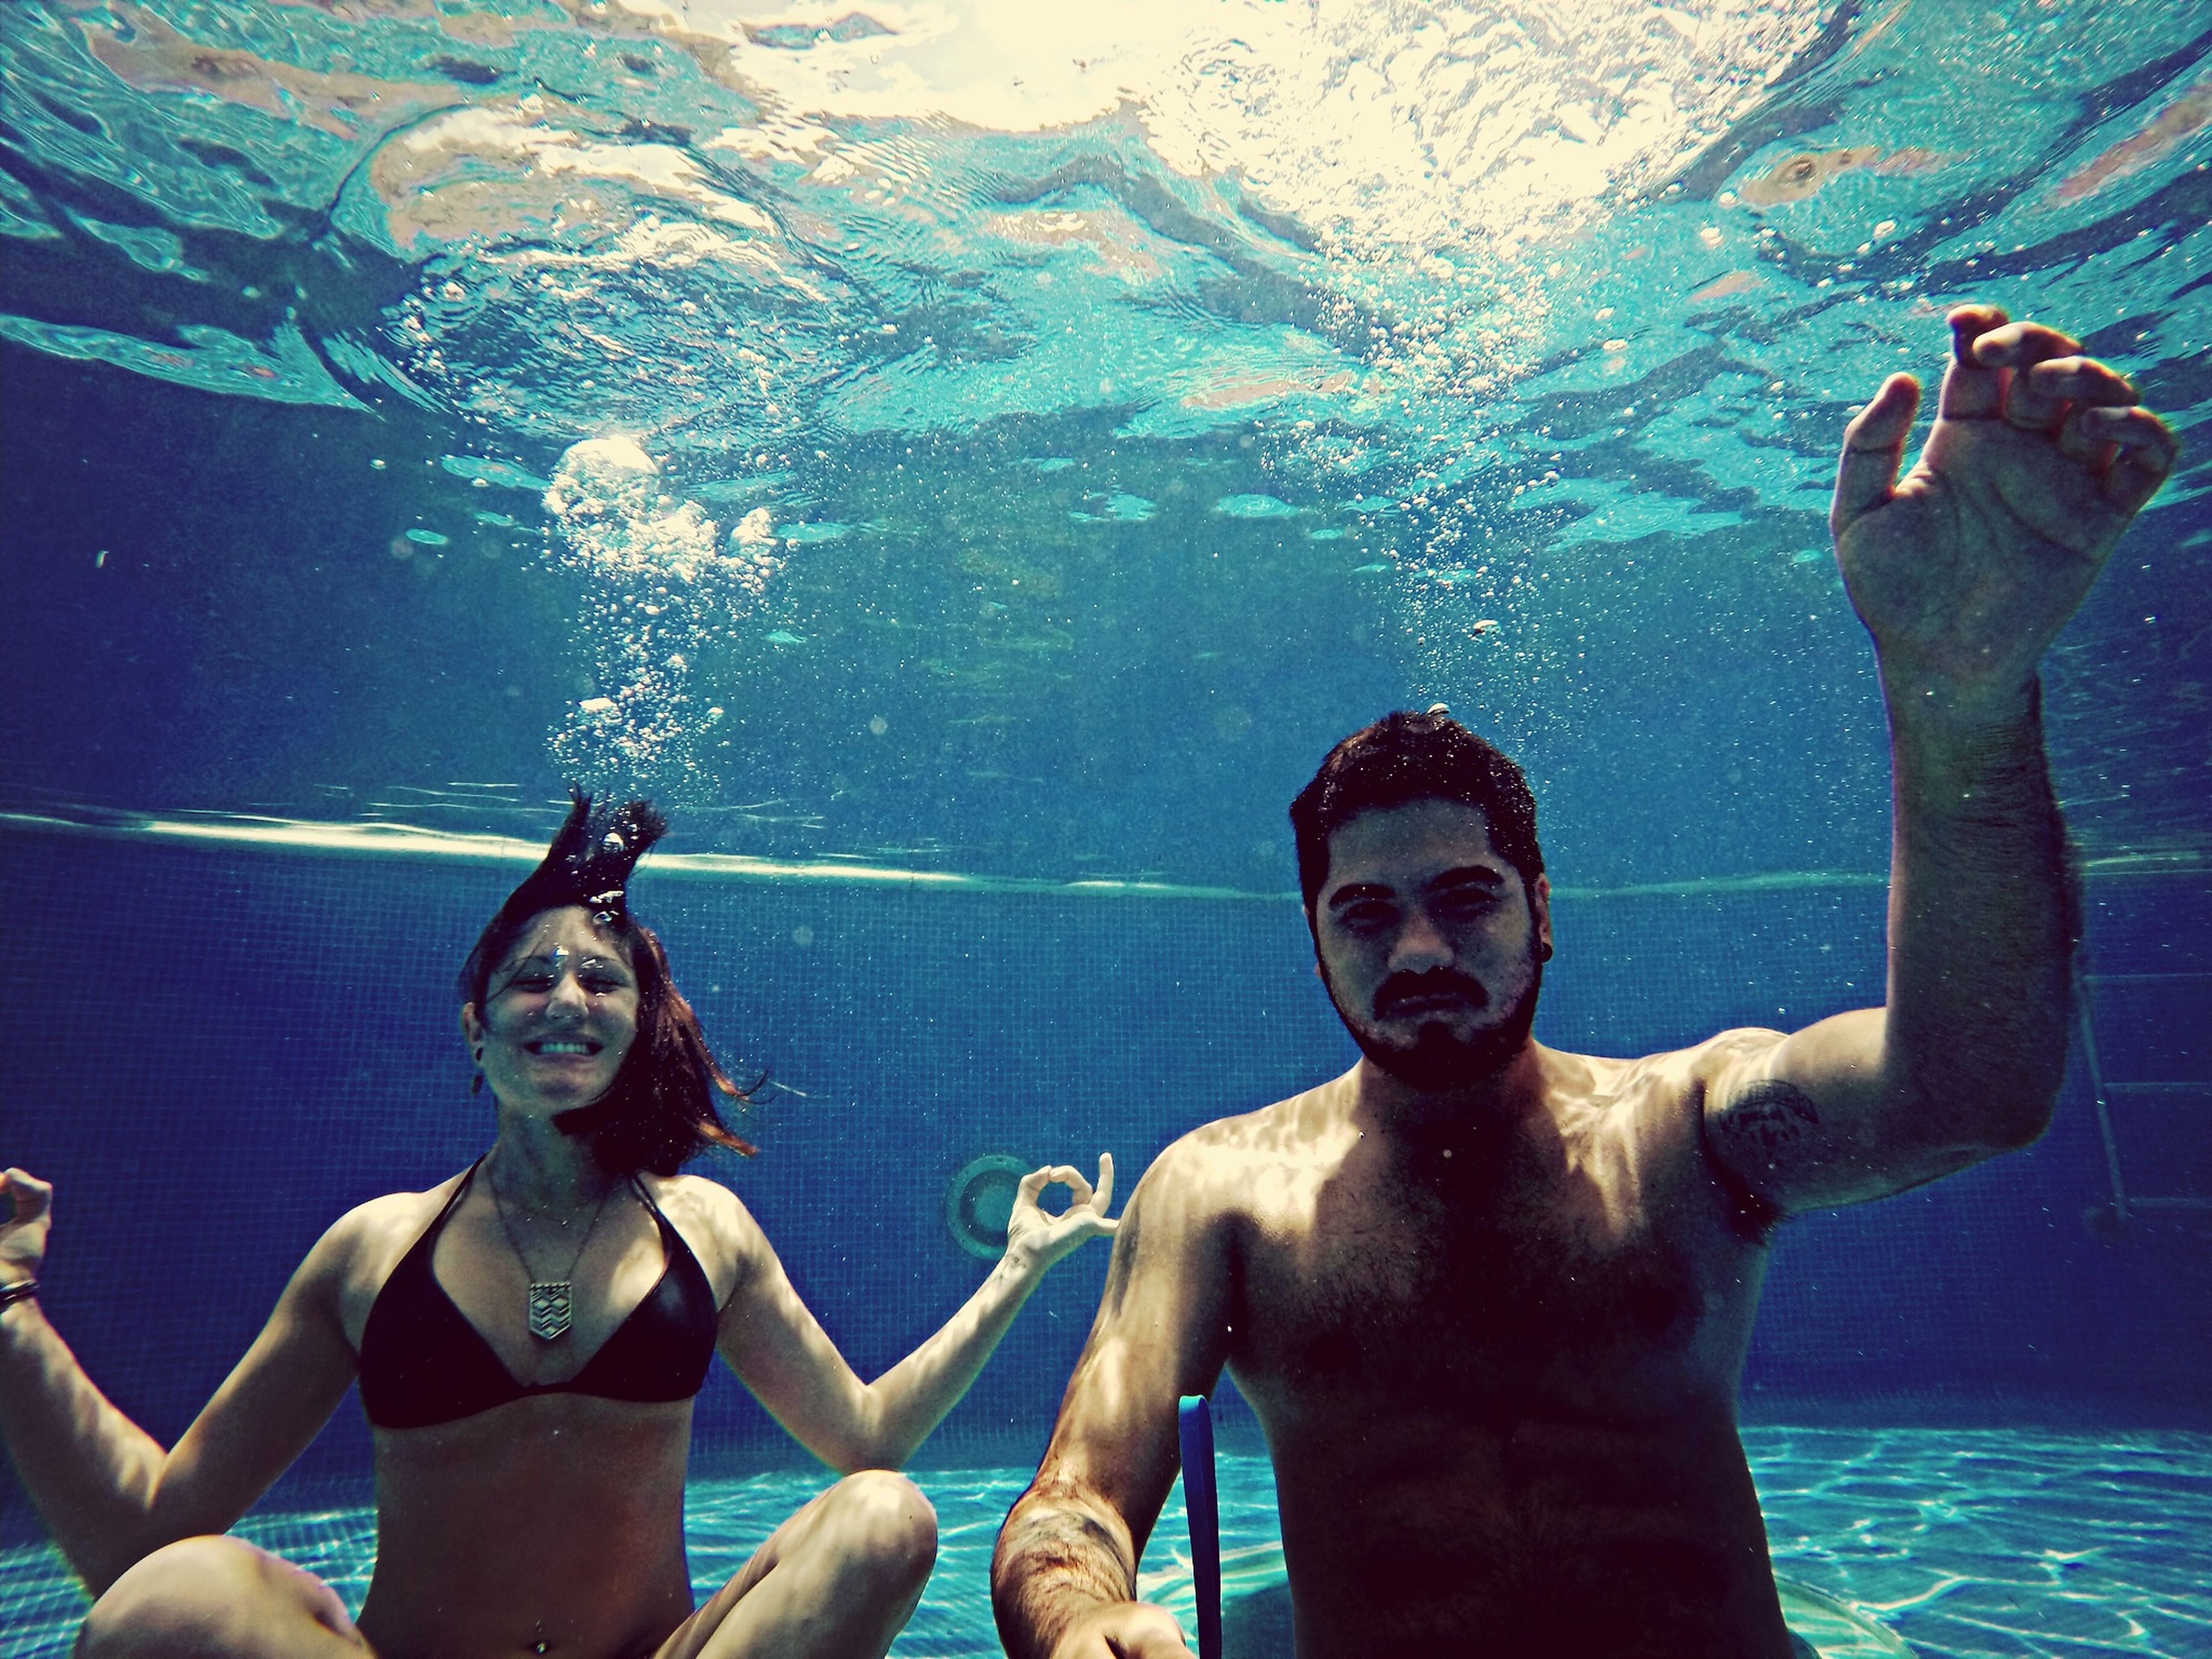 lifestyles, leisure activity, water, togetherness, enjoyment, person, bonding, young adult, young men, fun, happiness, looking at camera, vacations, portrait, swimming pool, smiling, swimming